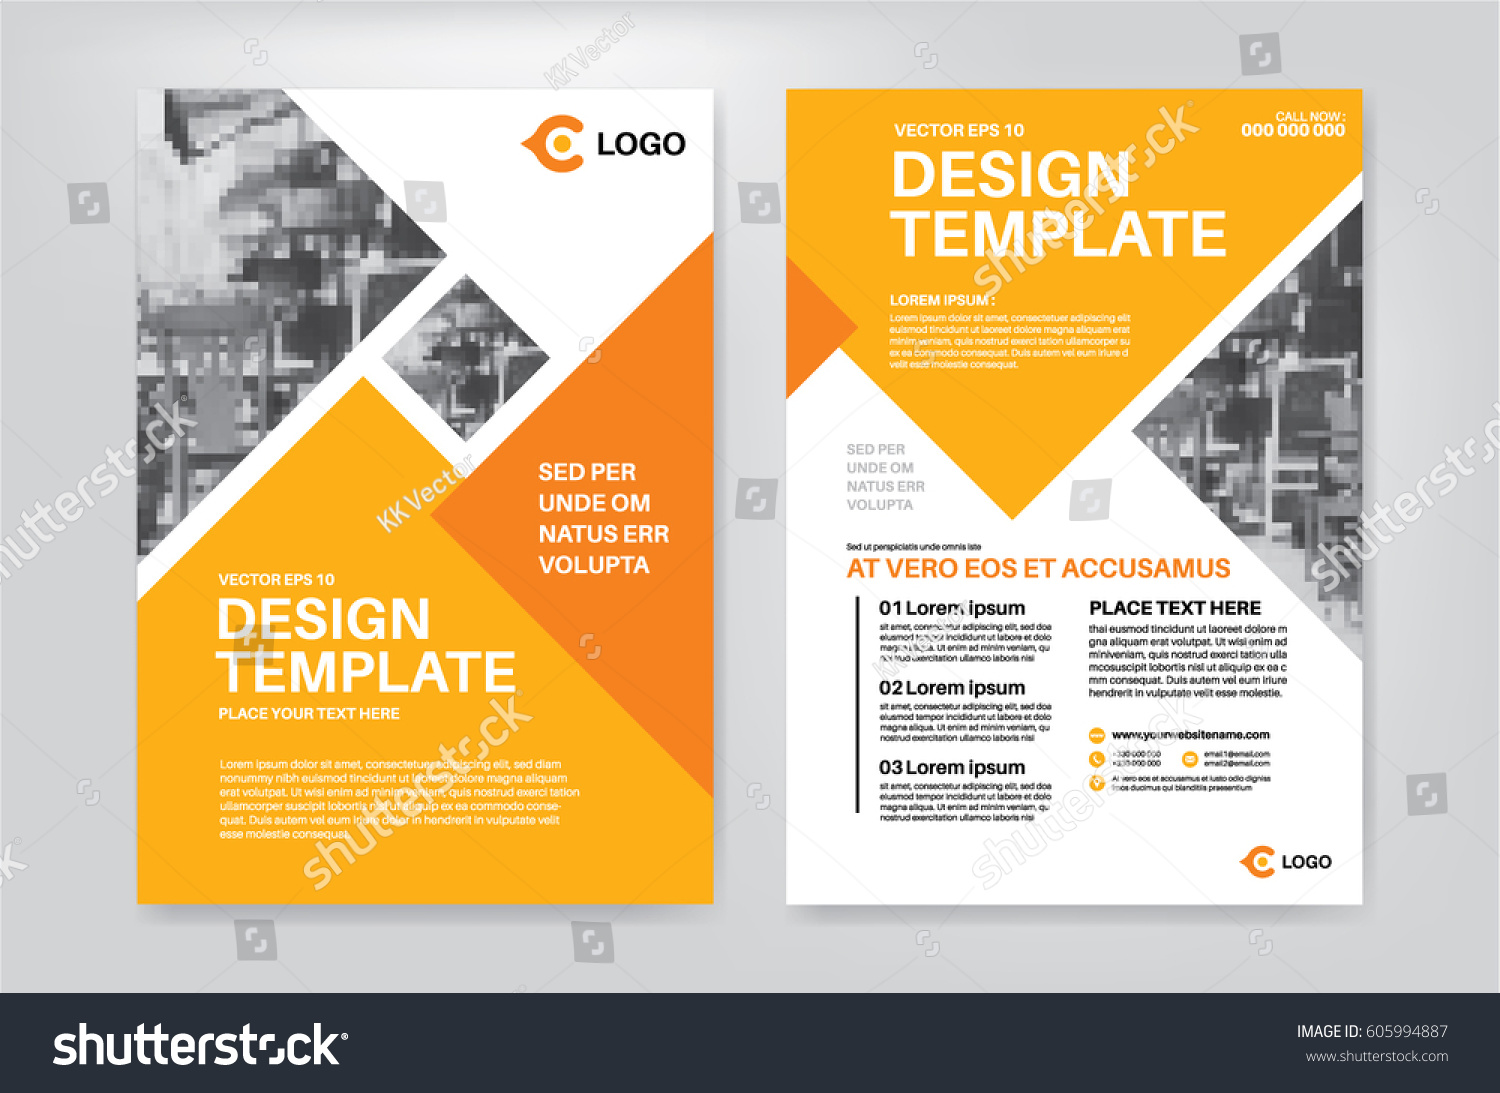 Vector Layout Design Template Leaflet Poster Stock Vector (Royalty ...